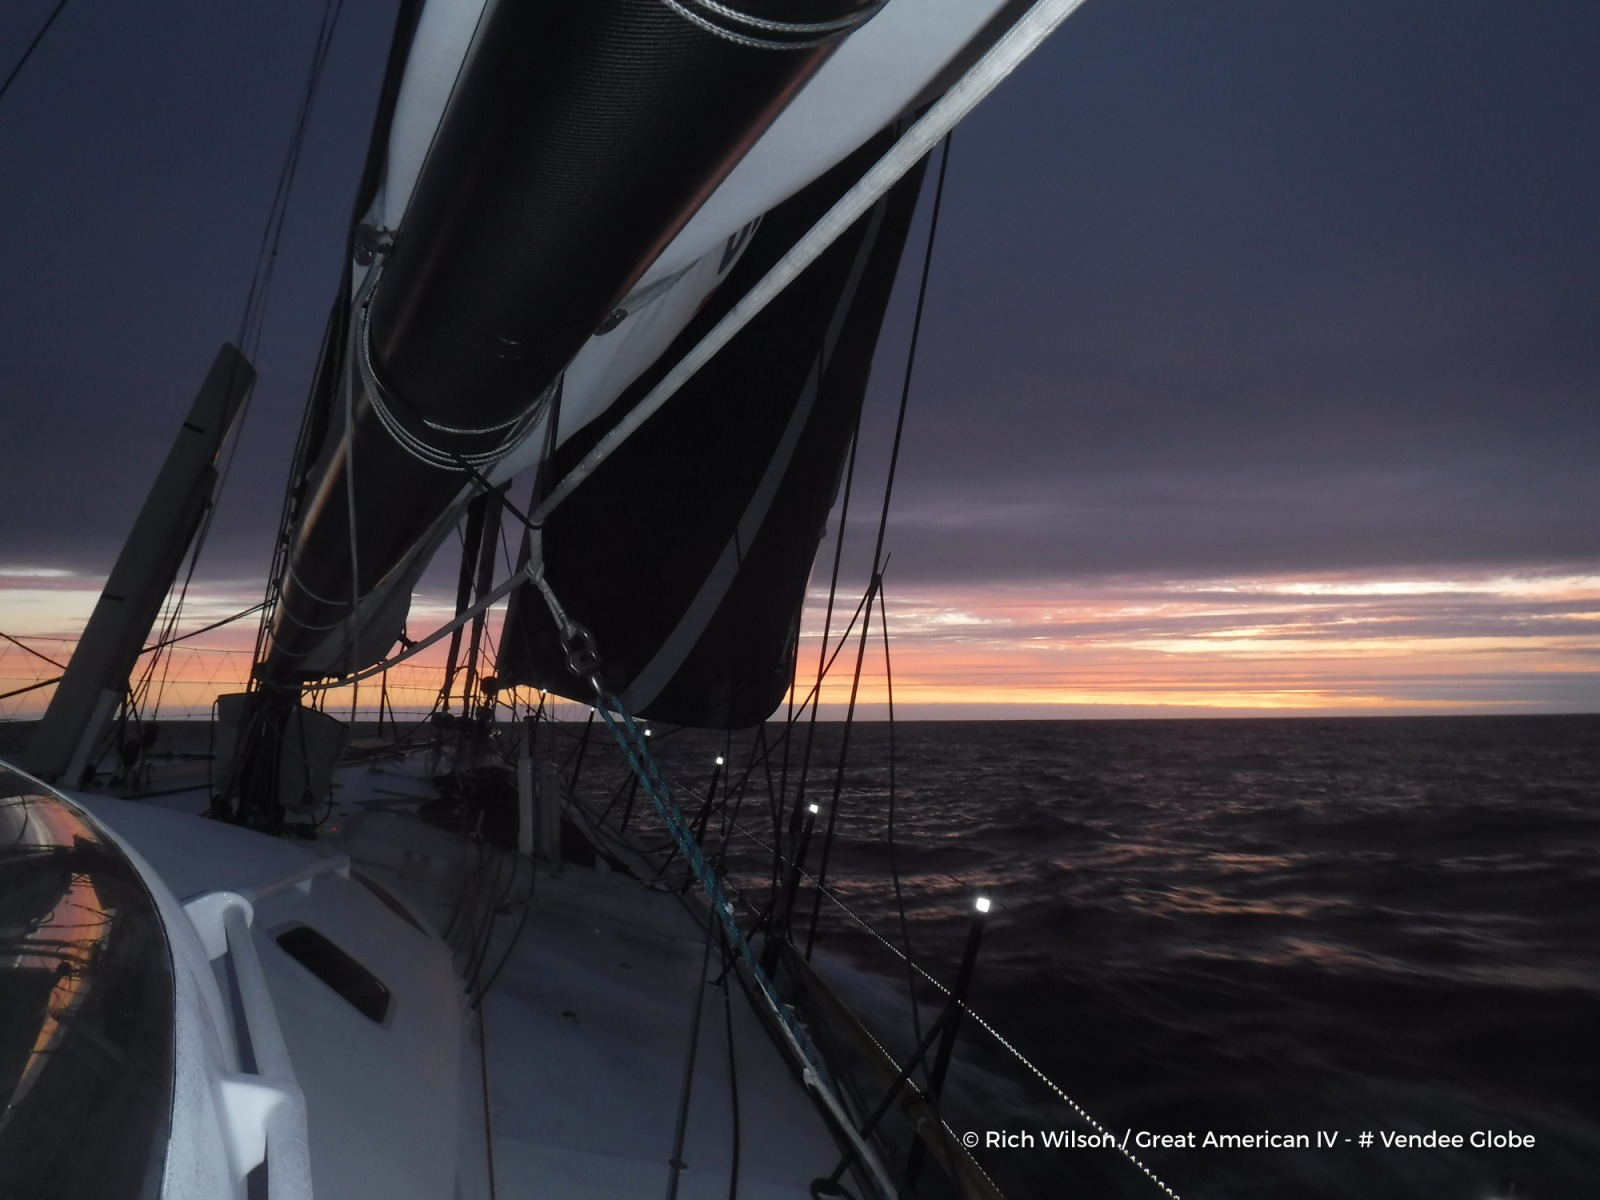 Photo sent from the boat Great American IV, on January 8th, 2017 - Photo Rich WilsonPhoto envoyée depuis le bateau Great American IV le 8 Janvier 2017 - Photo Rich Wilson